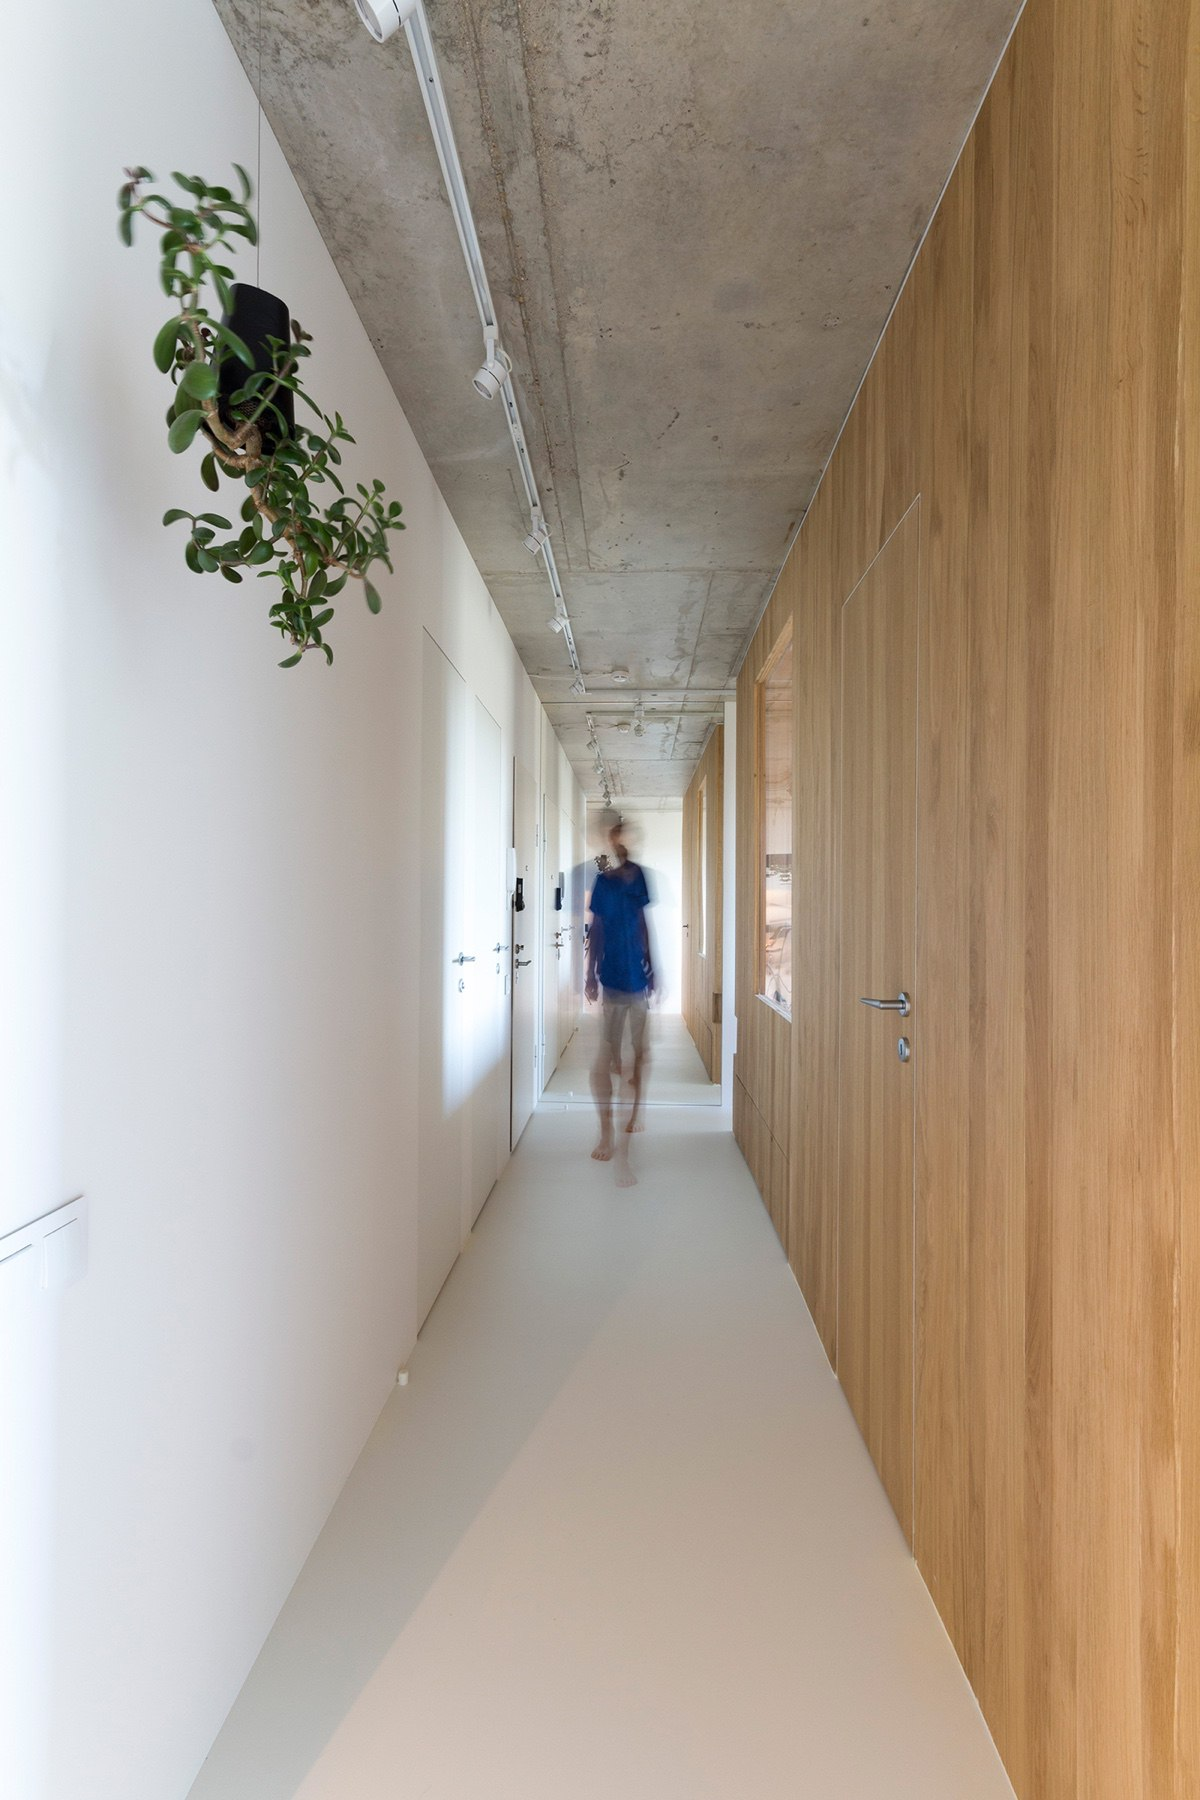 Minimal Hallway Houses Under Sqm Living Hanging Plants White And Wood Walls - Super small studio apartment under 50 square meters includes floor plan